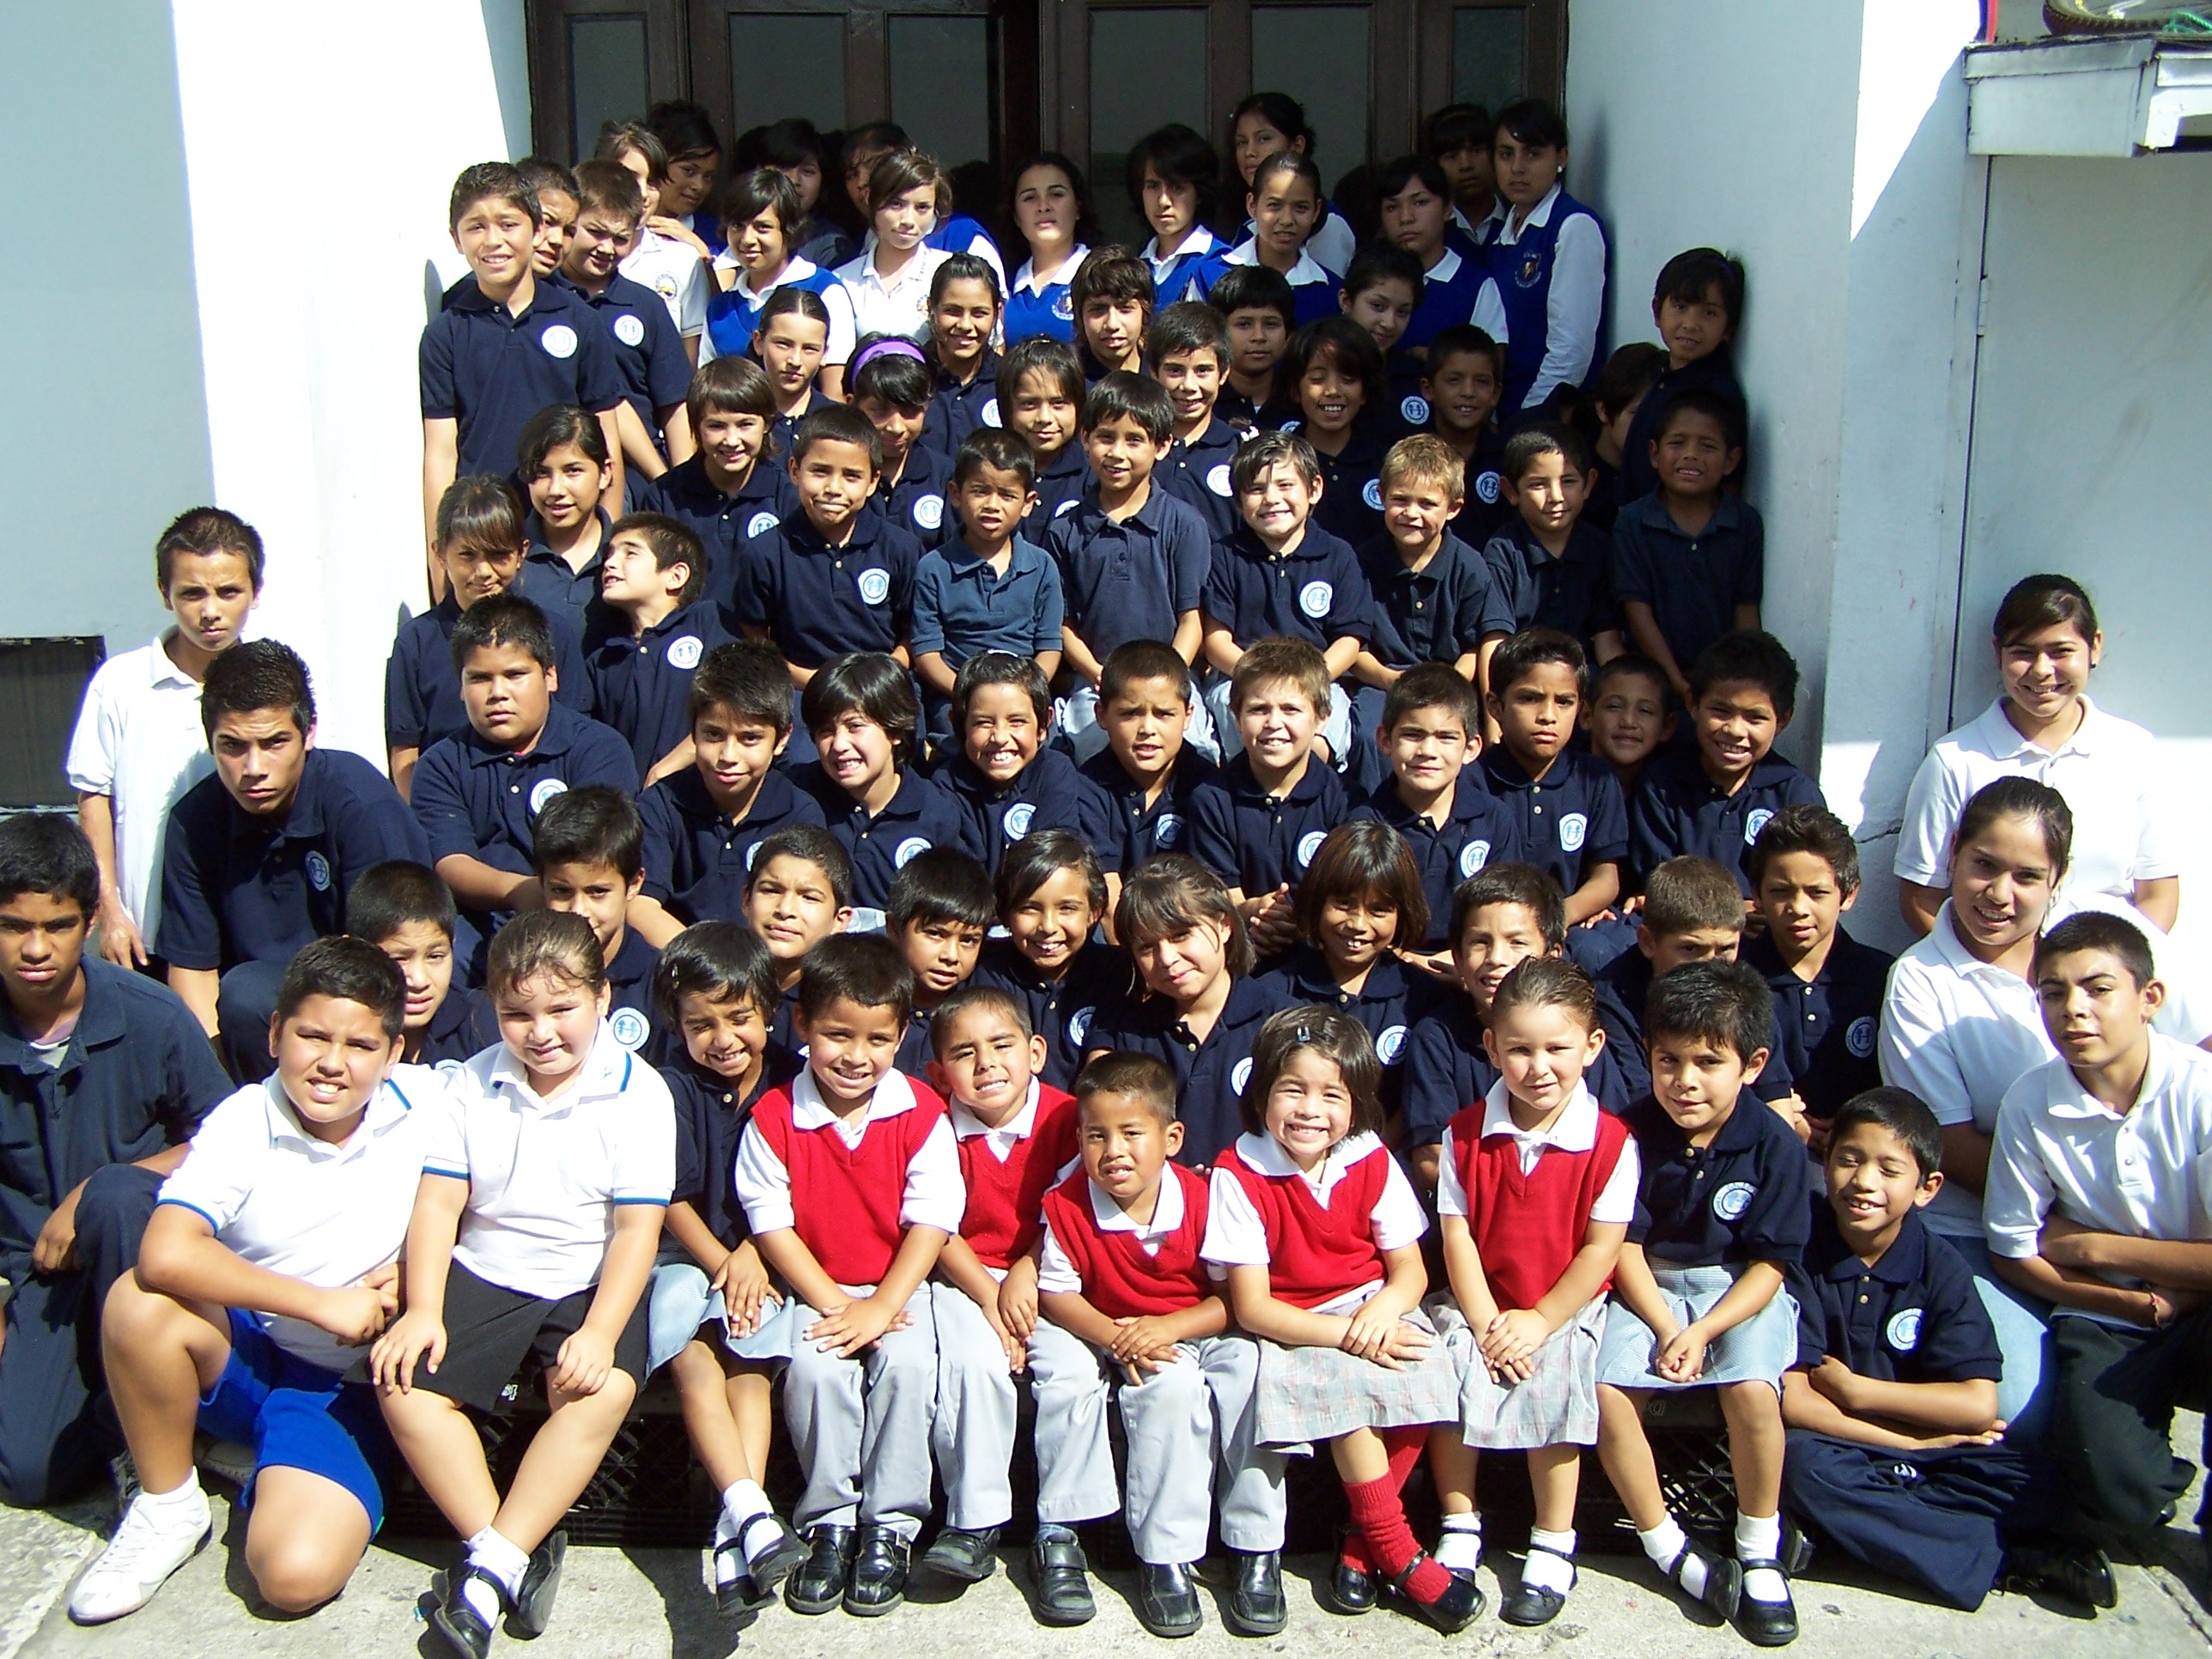 Mexico Orphanage Picture for HALO